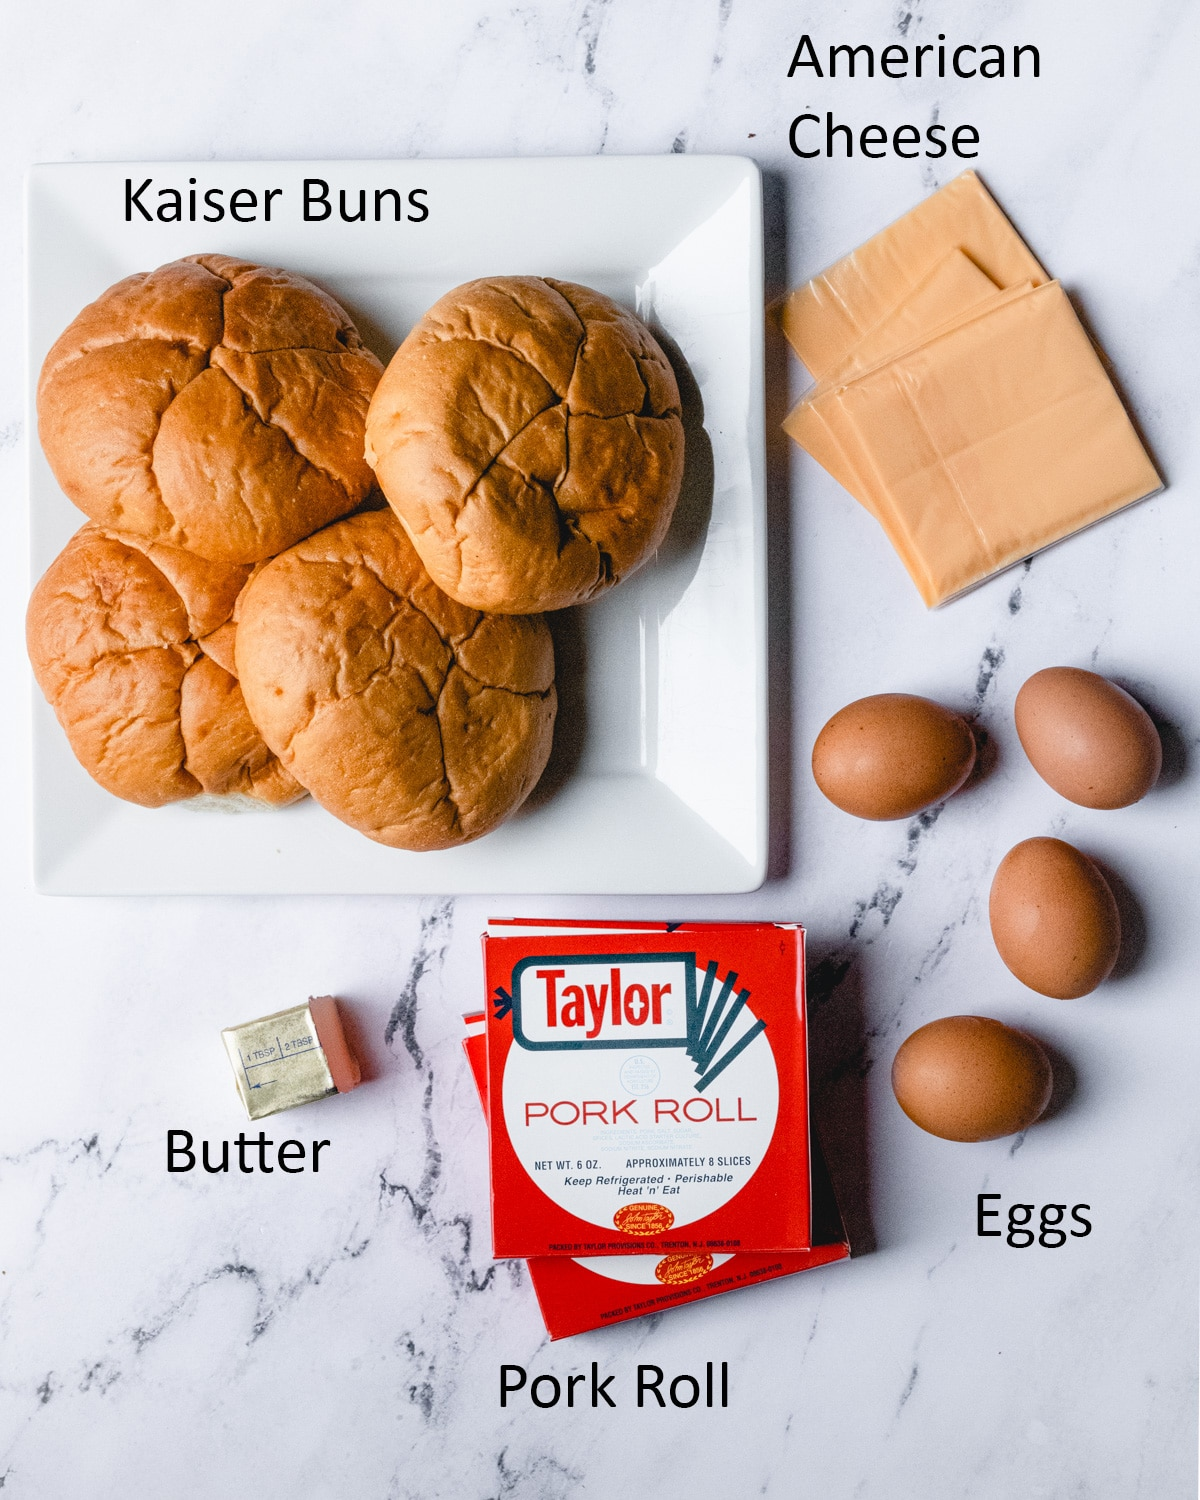 Pork roll egg and cheese sandwich ingredients: Kaiser bun, American cheese, eggs, Pork roll, and butter.